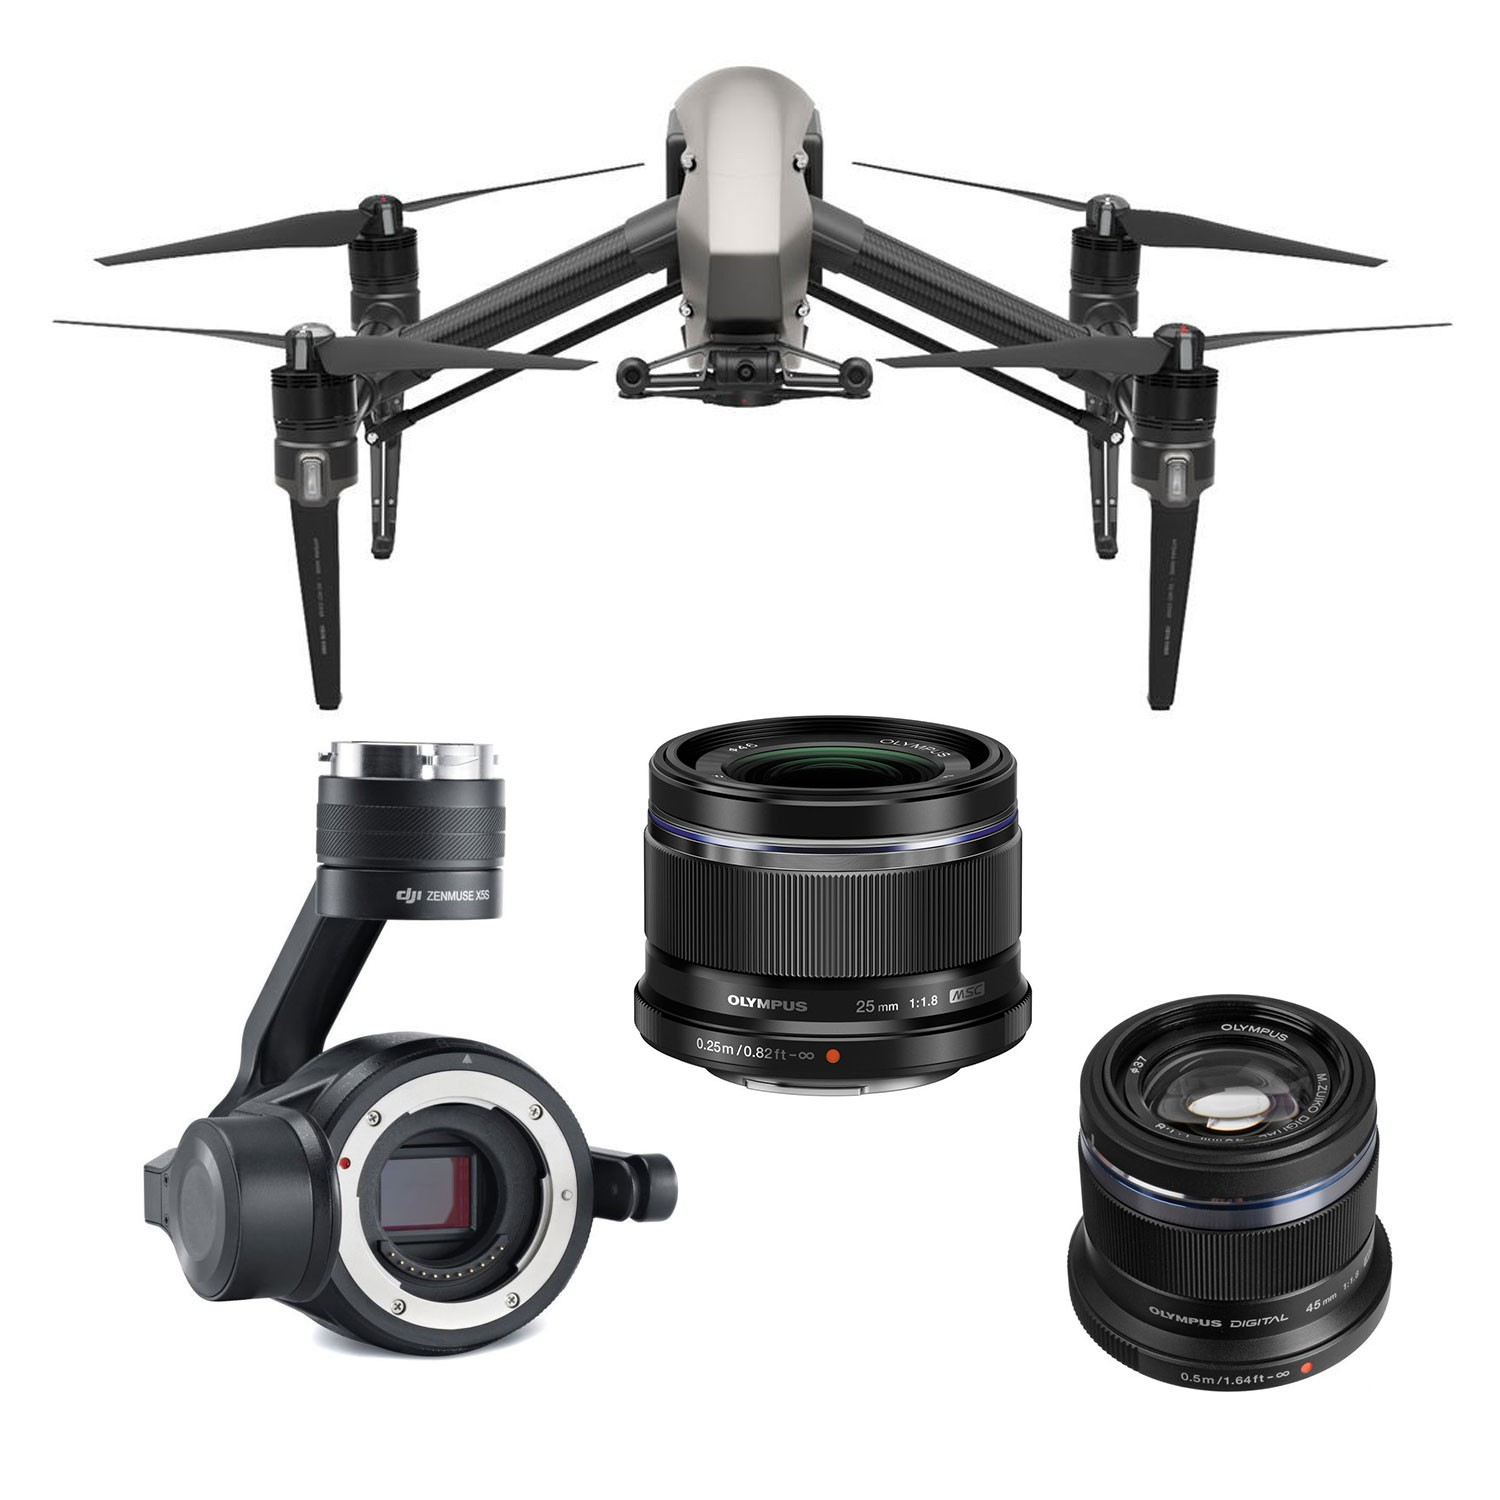 Drone for aerial photography at very high resolution